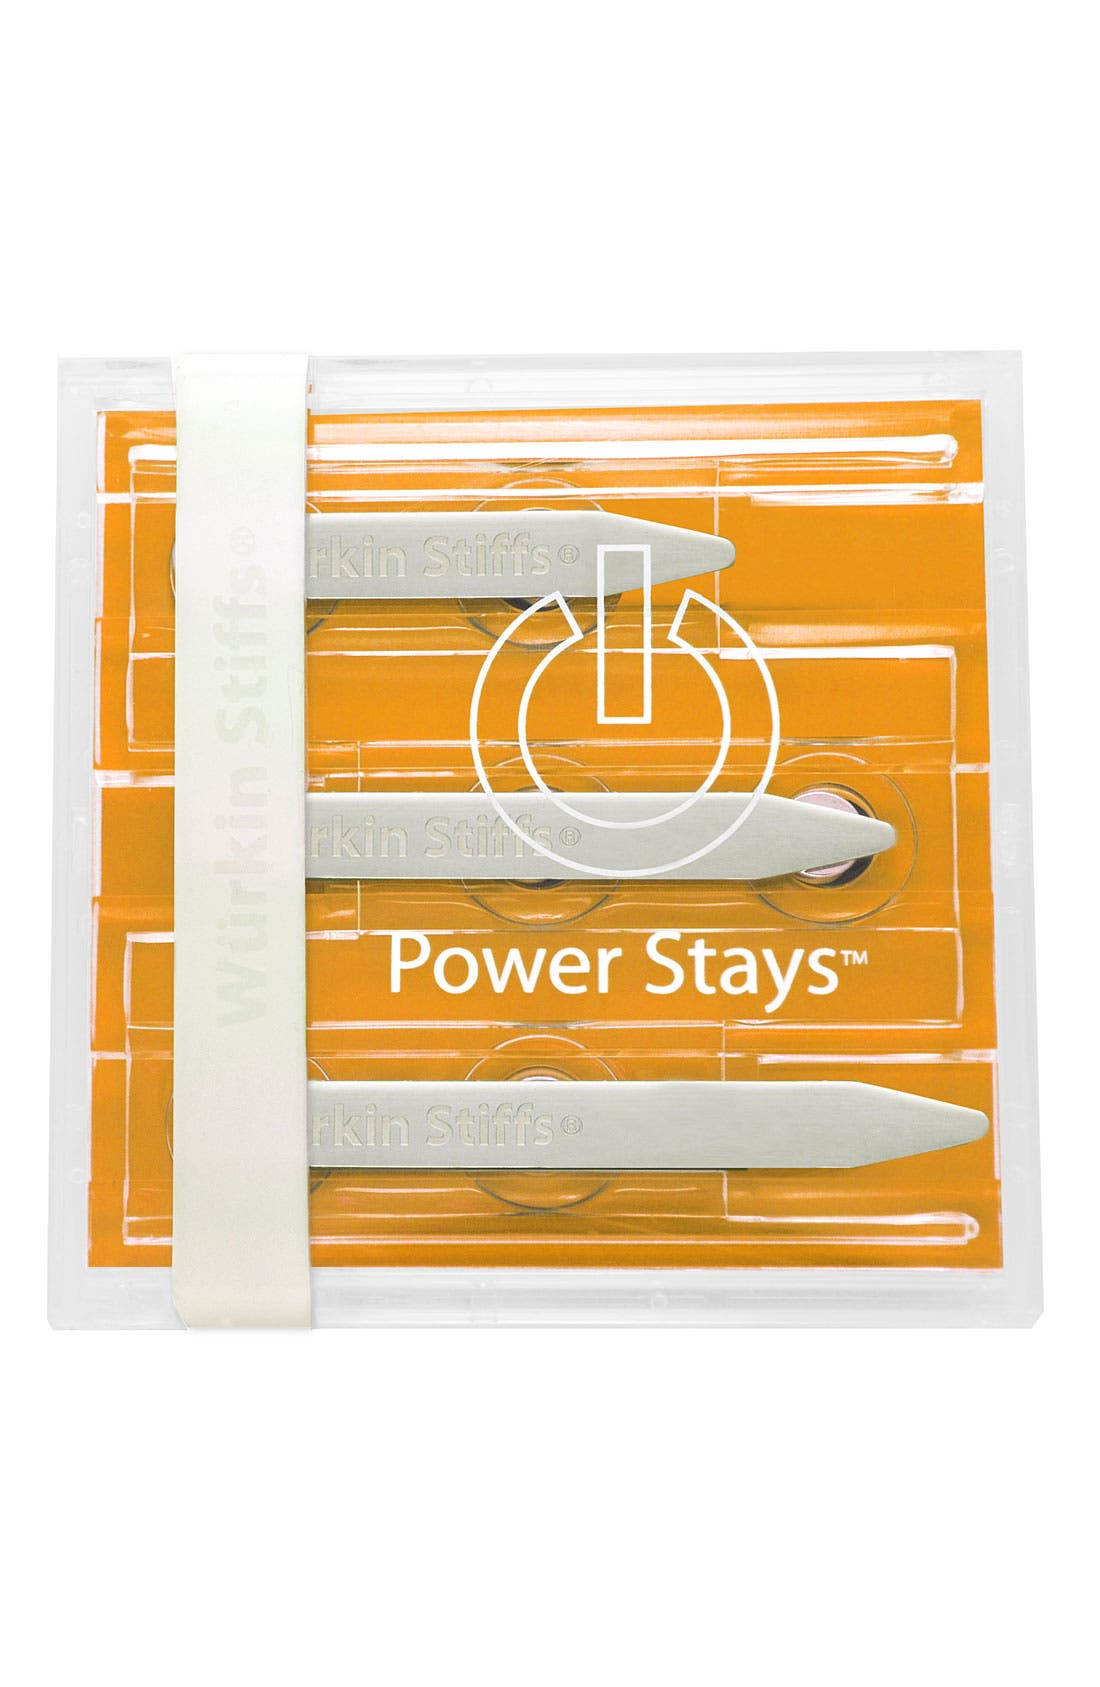 Alternate Image 1 Selected - Würkin Stiffs 'Power' Stays (6-Piece Set)